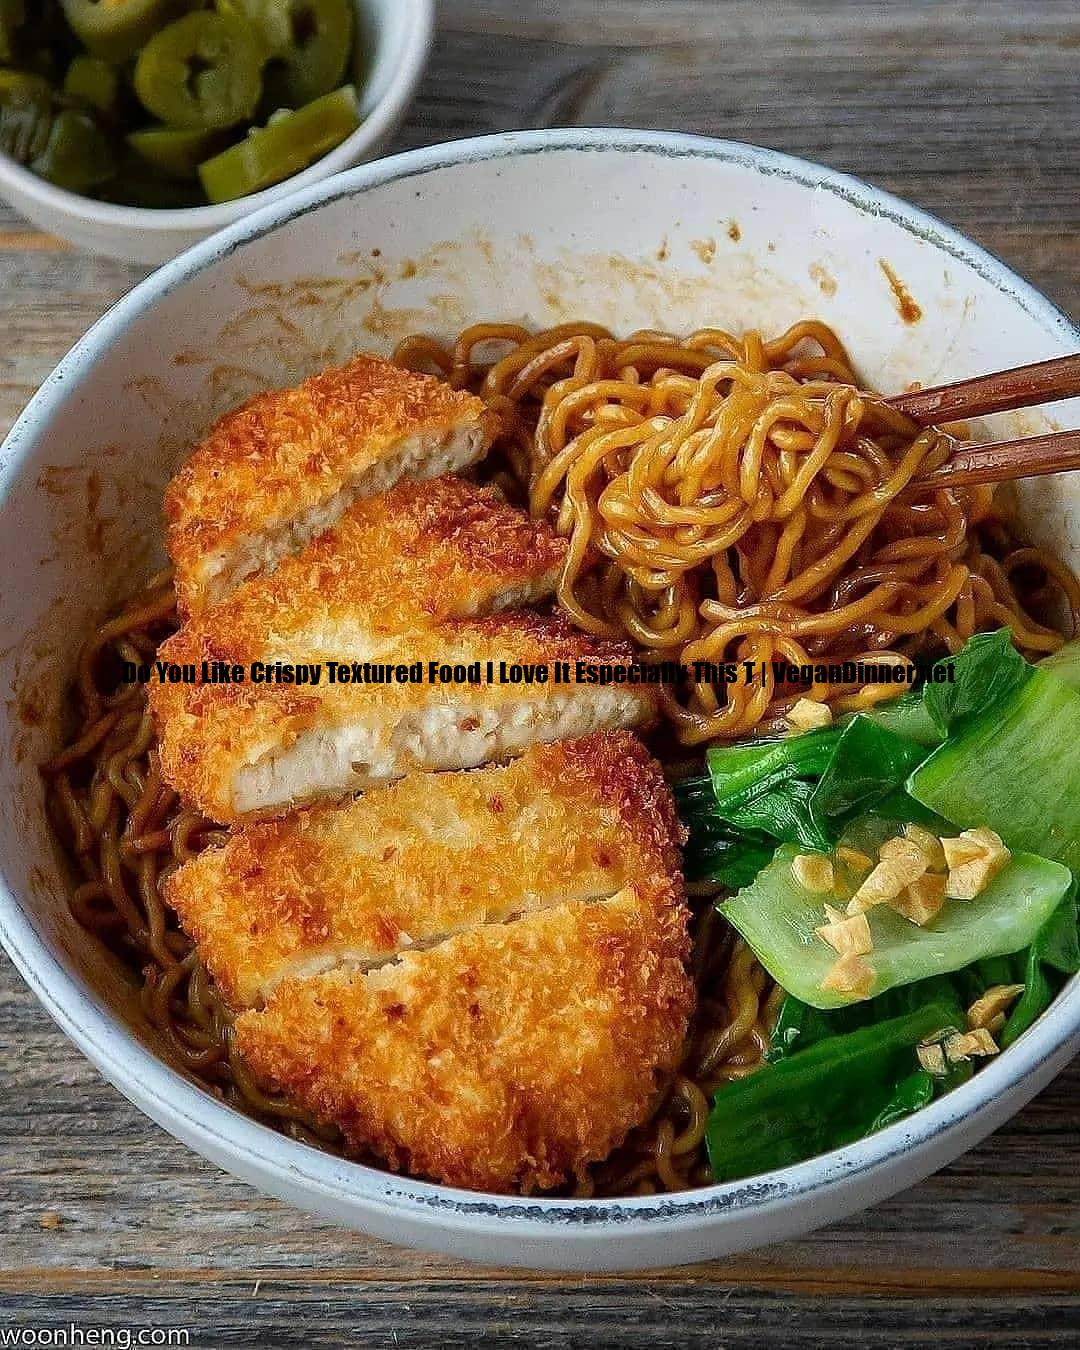 do you like crispy textured food i love it especially this t display image aff